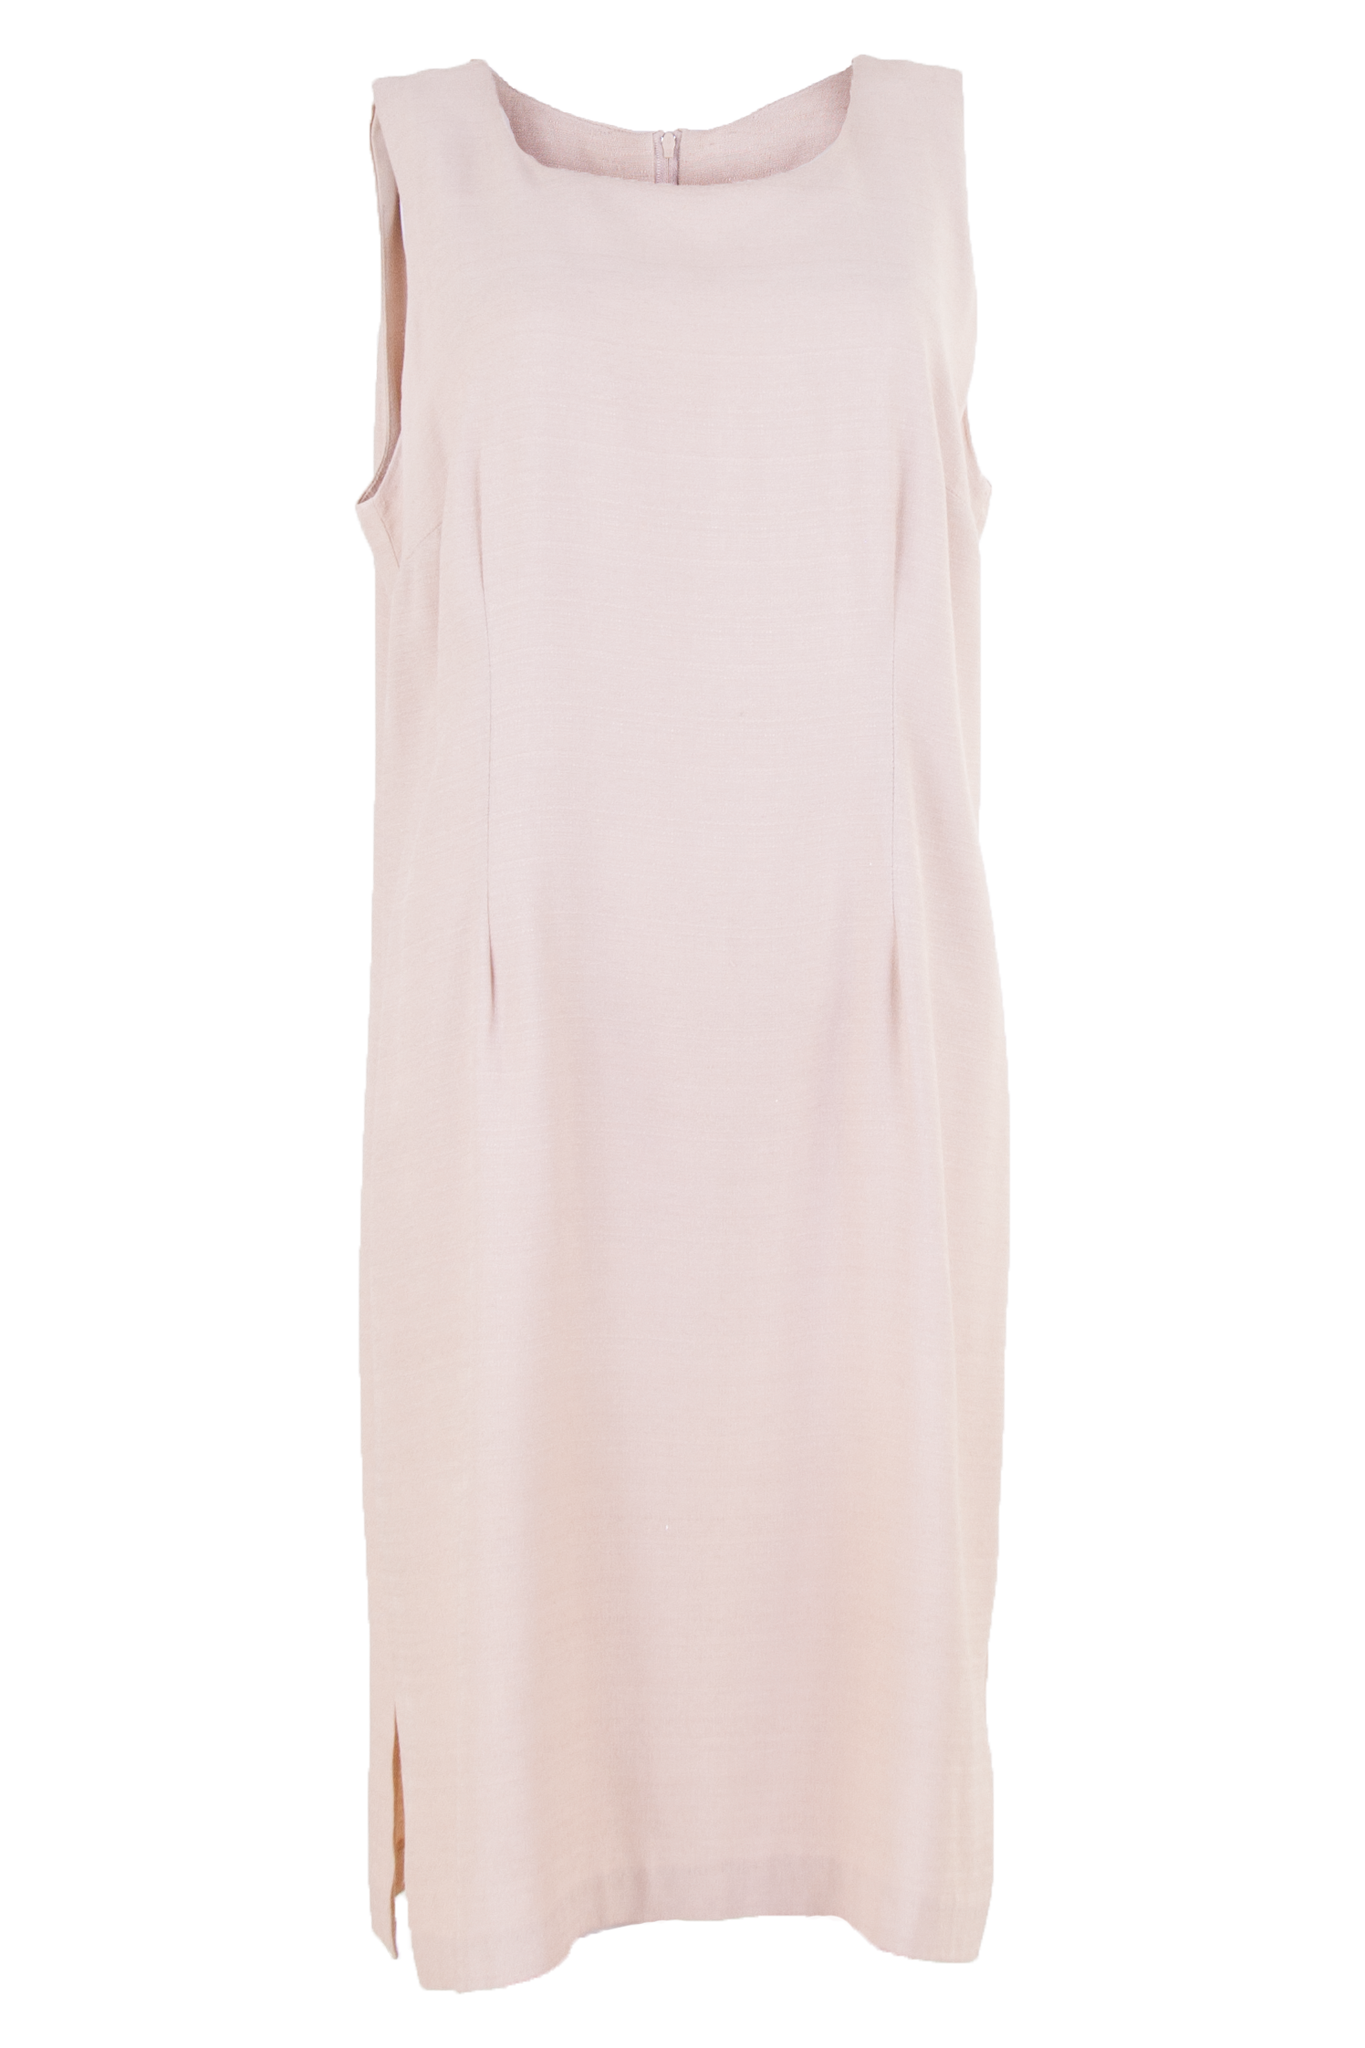 Cream crepe sleeveless dress